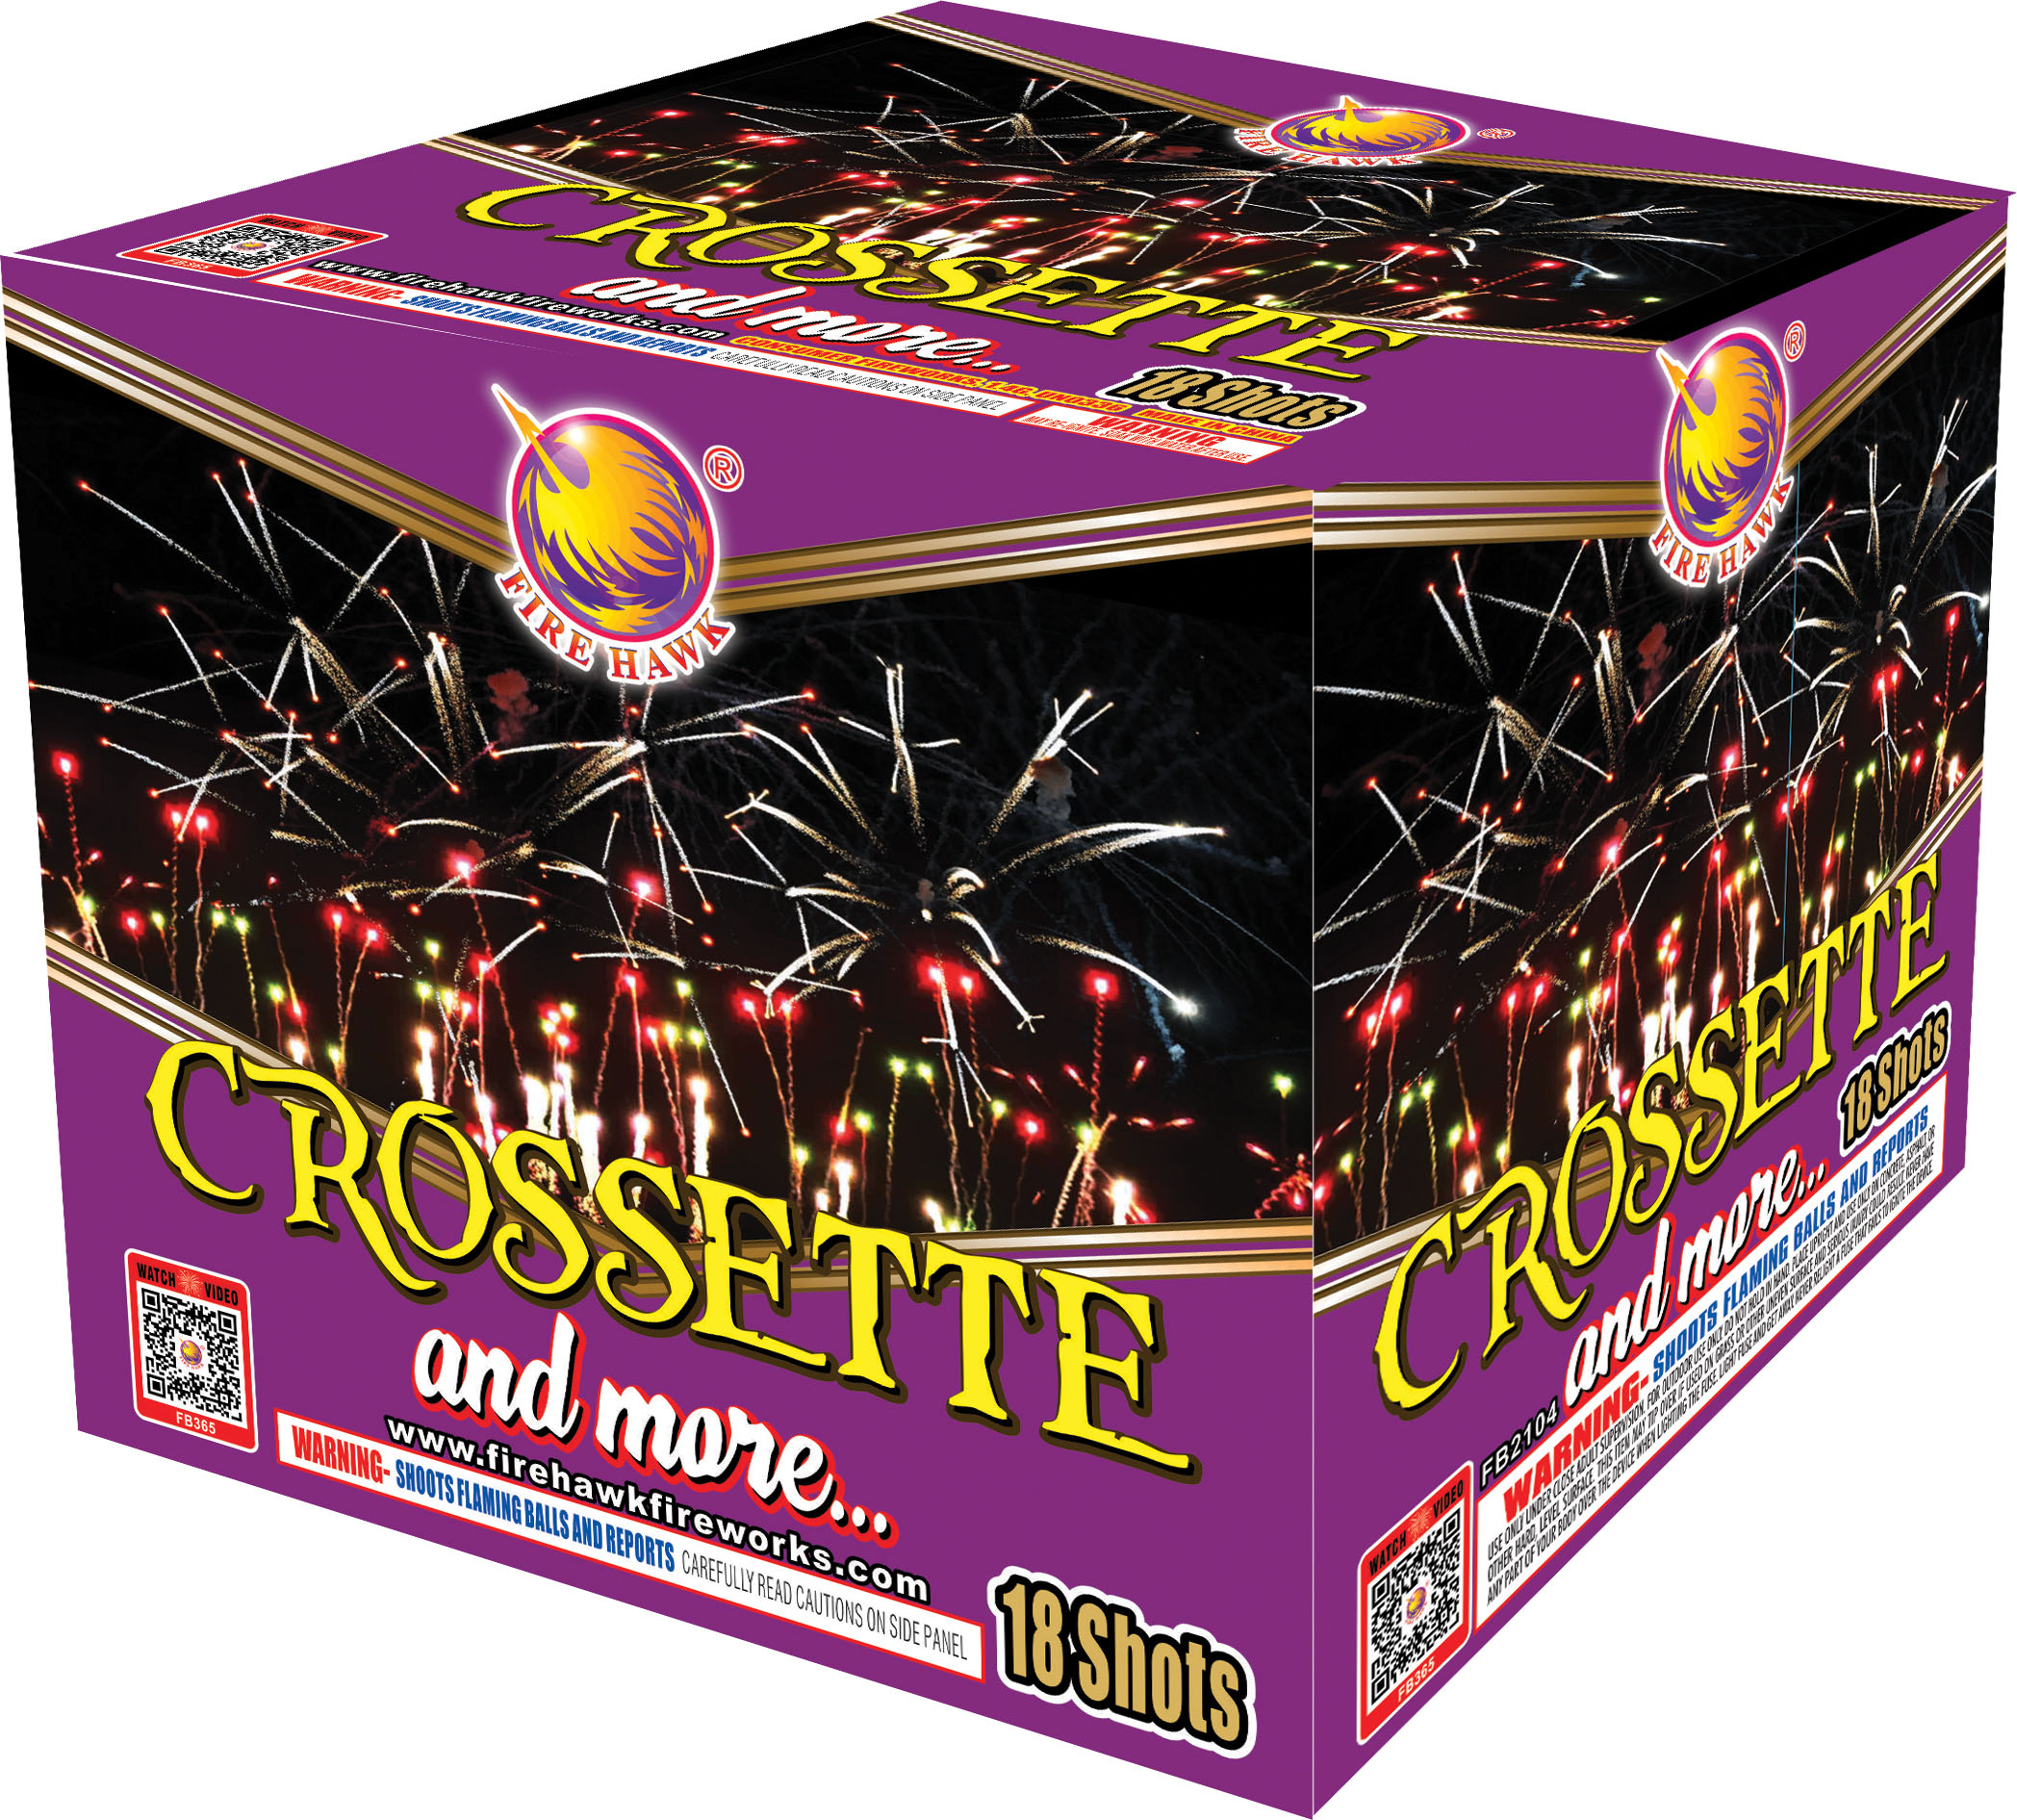 FB2109 Crossette and more